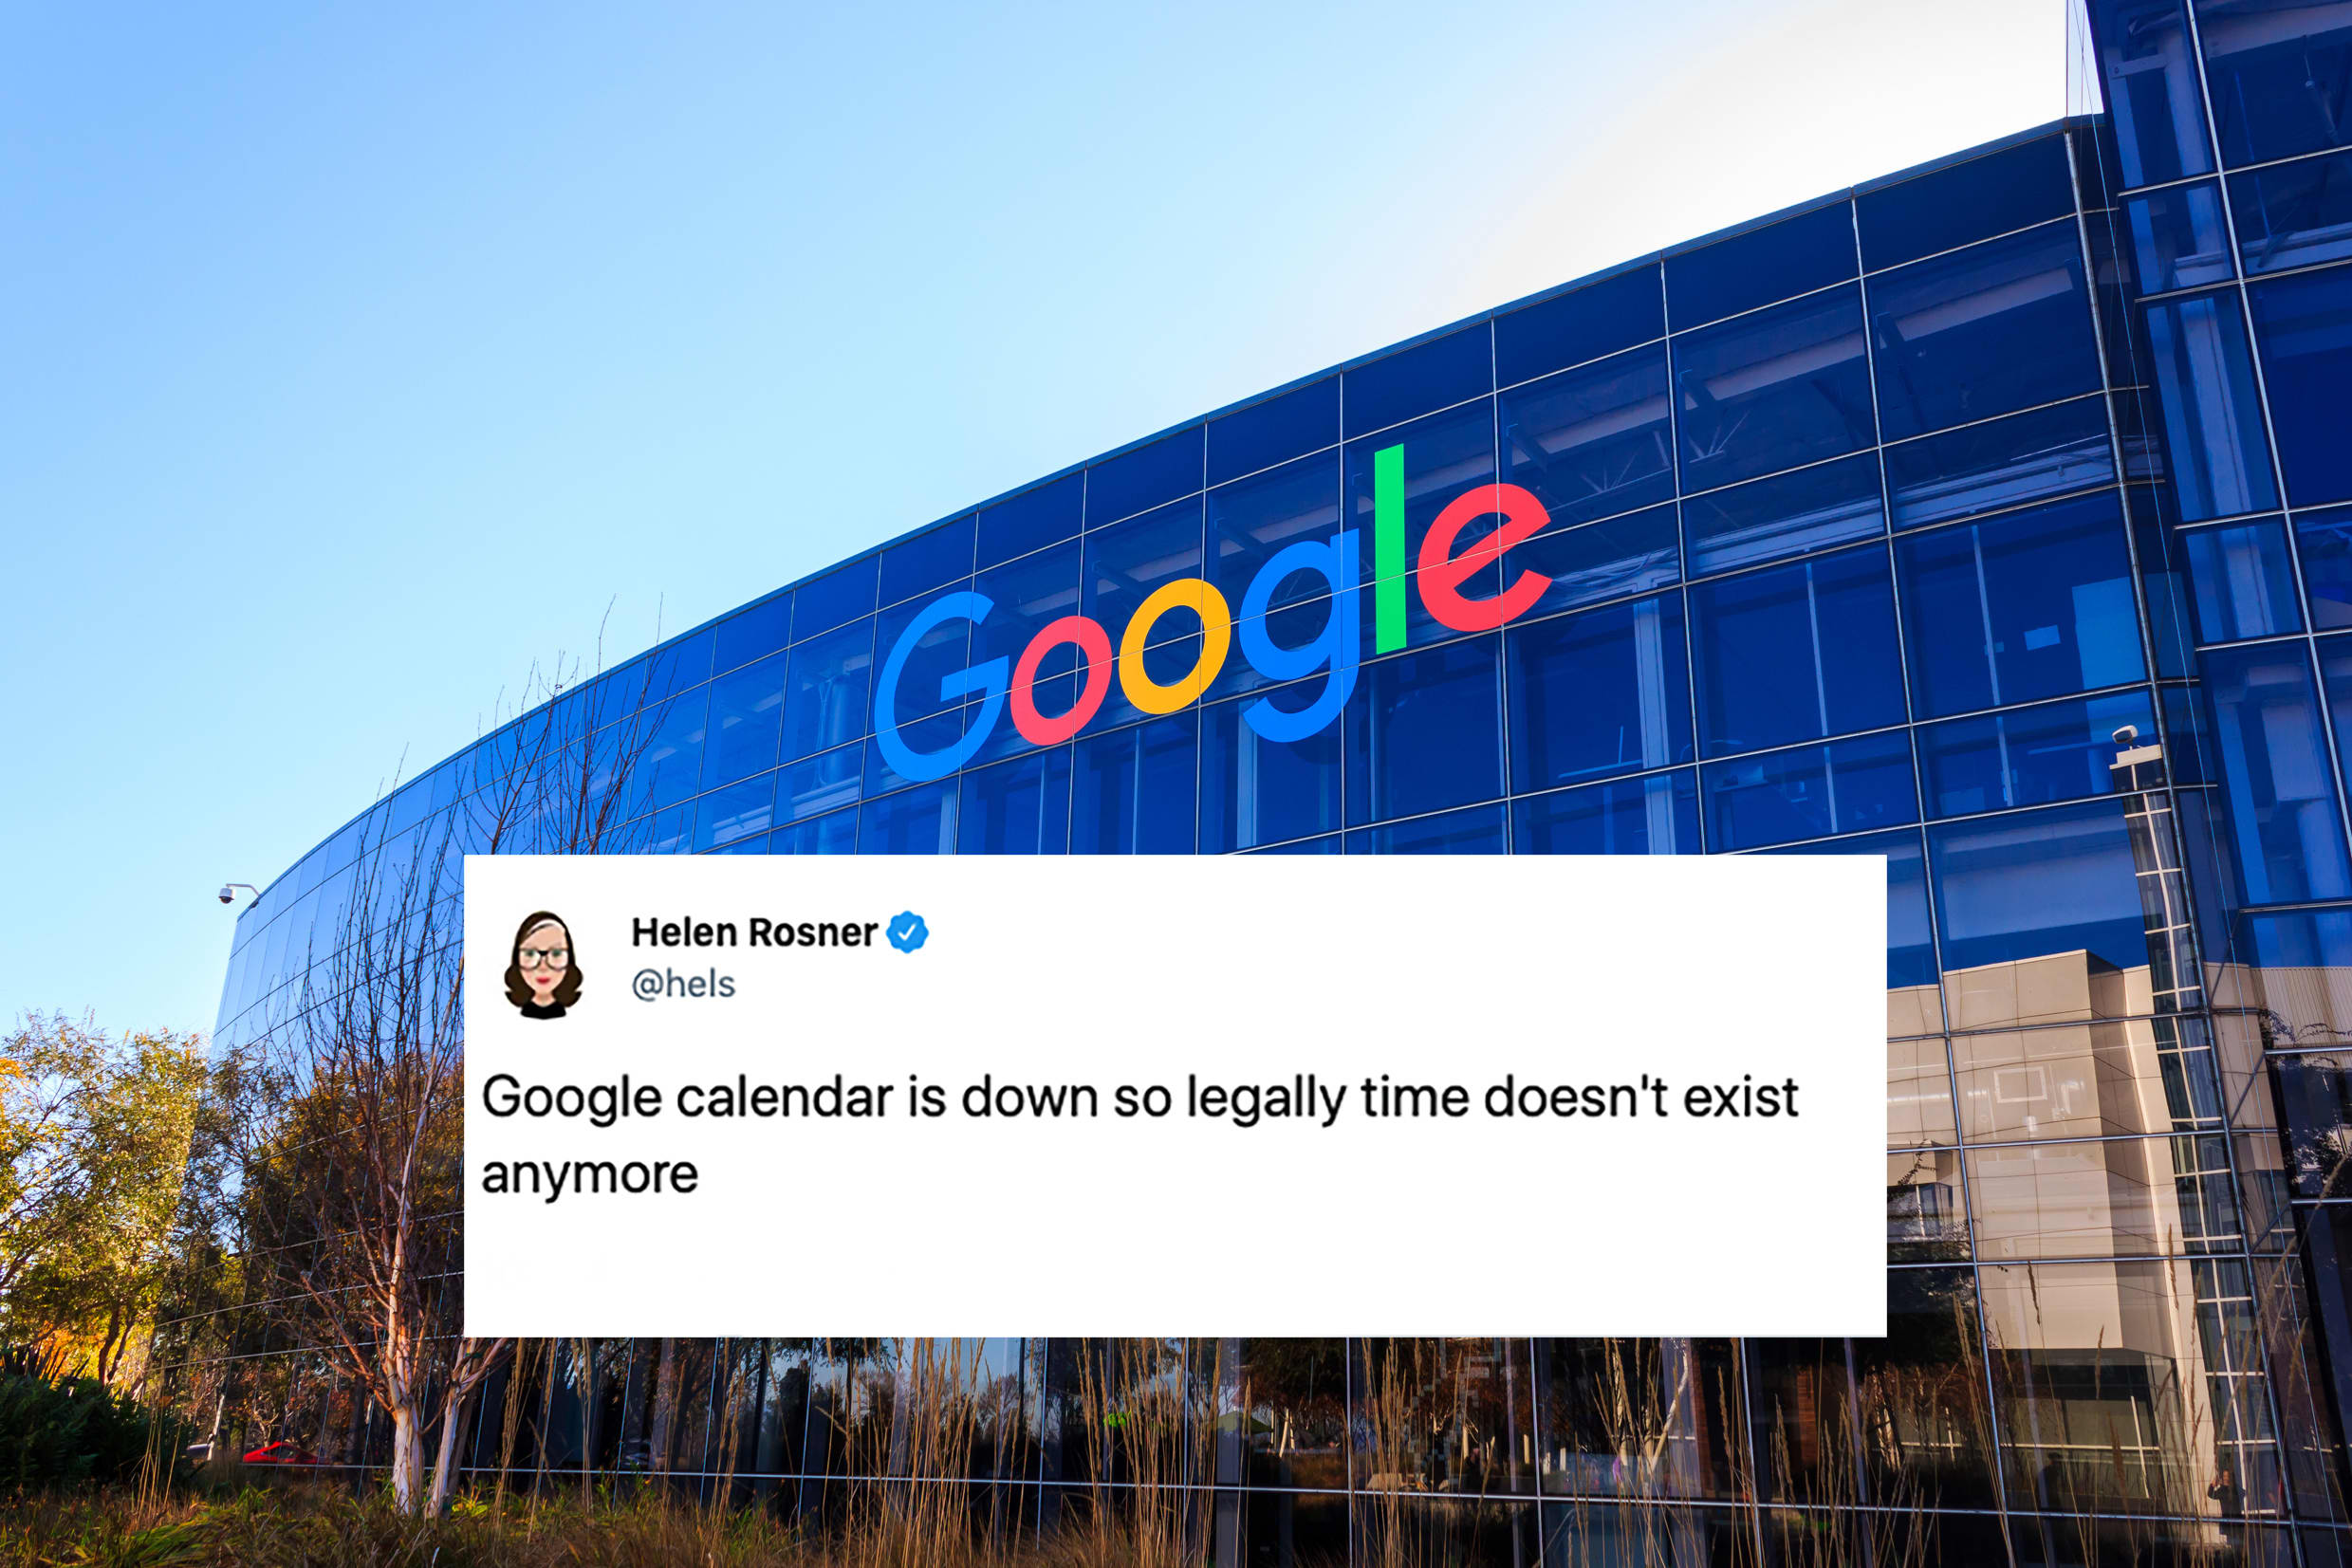 Google Calendar Is Down, Which Means You Can Do Whatever You Want, According to Twitter